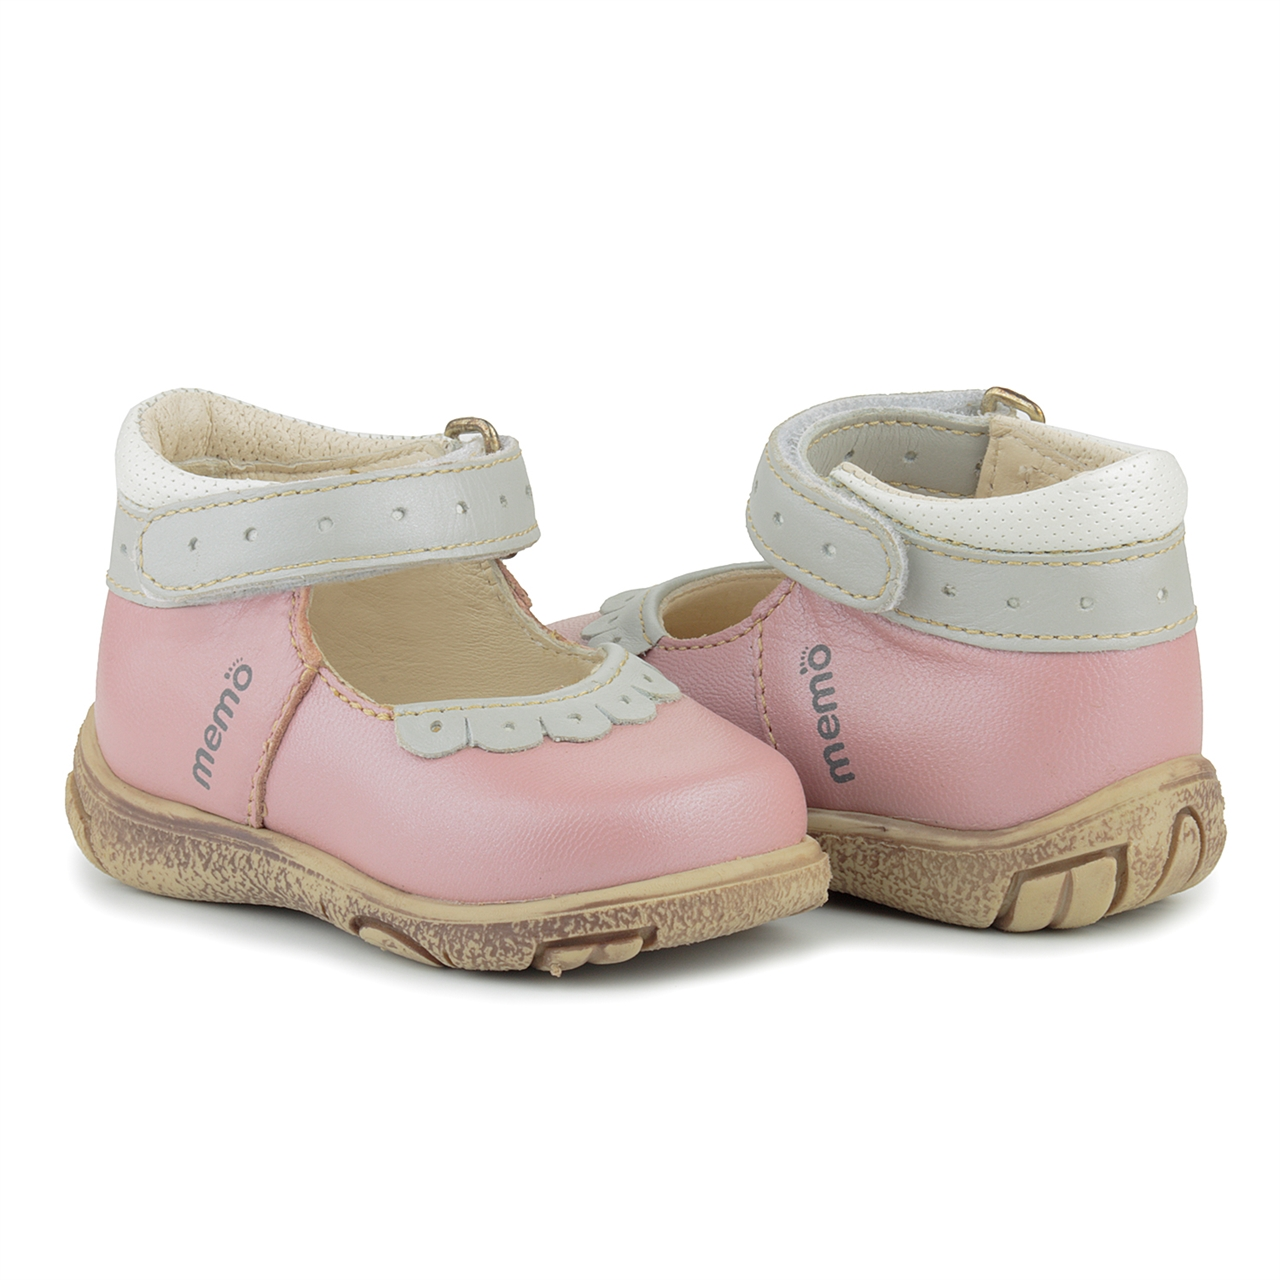 Memo Shoes. Memo Fiona 3JB Pink Infant & Toddler Girl ...